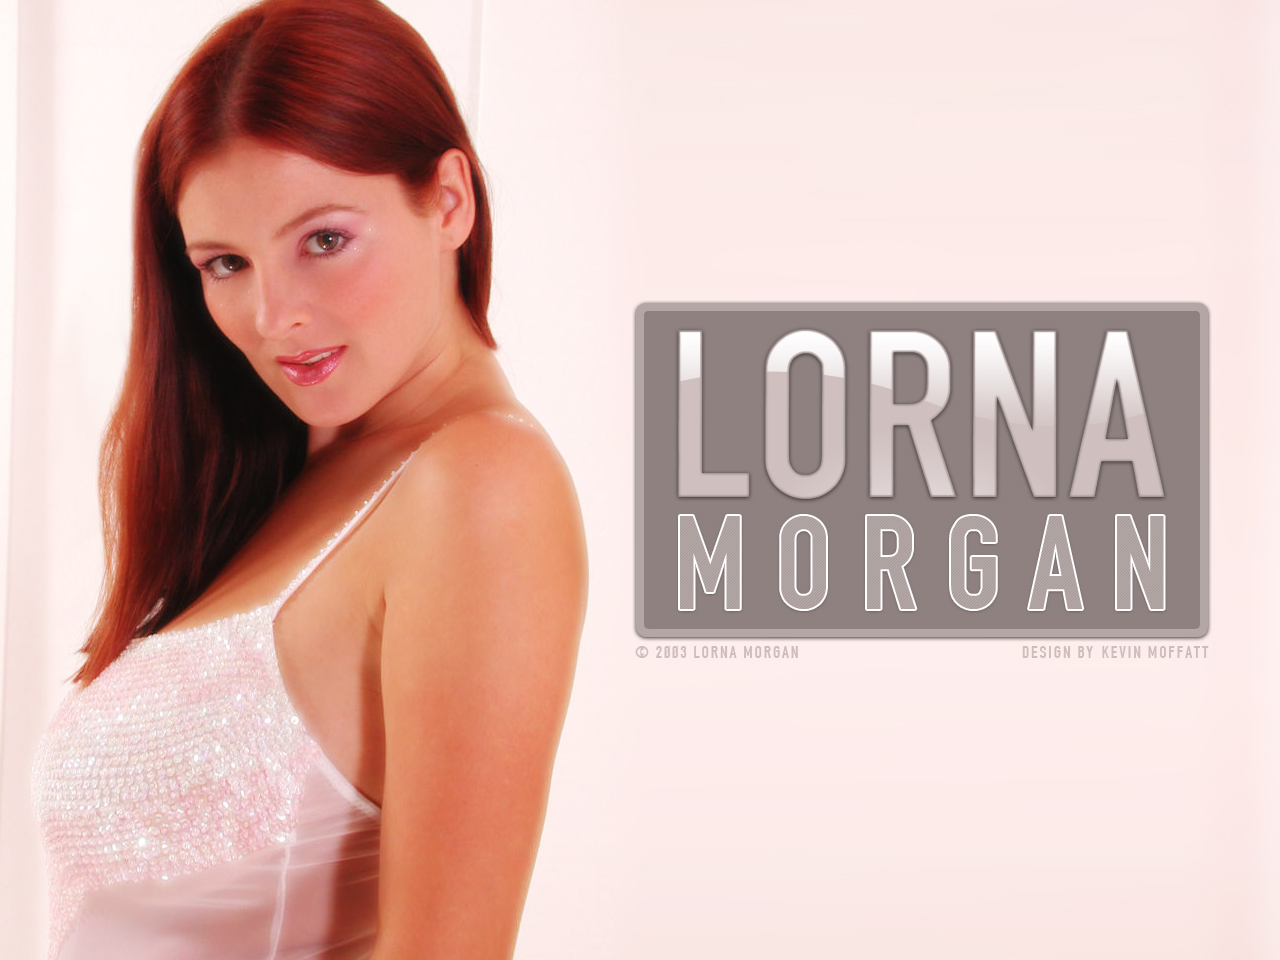 Lorna morgan 1